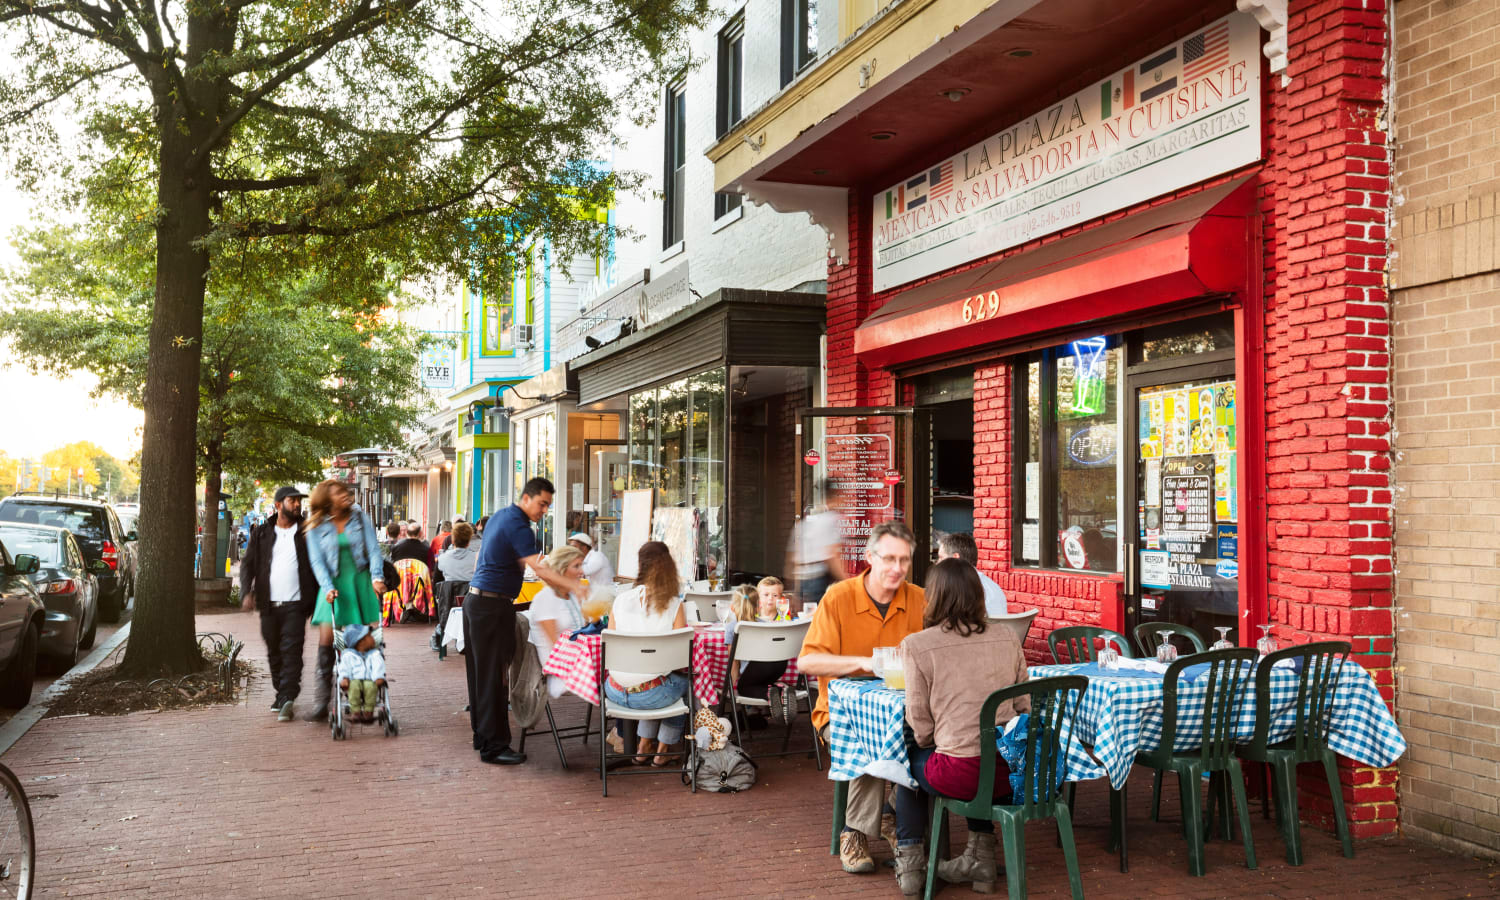 Restaurants with outdoor seating in the neighborhood at The Bixby in Washington, District of Columbia